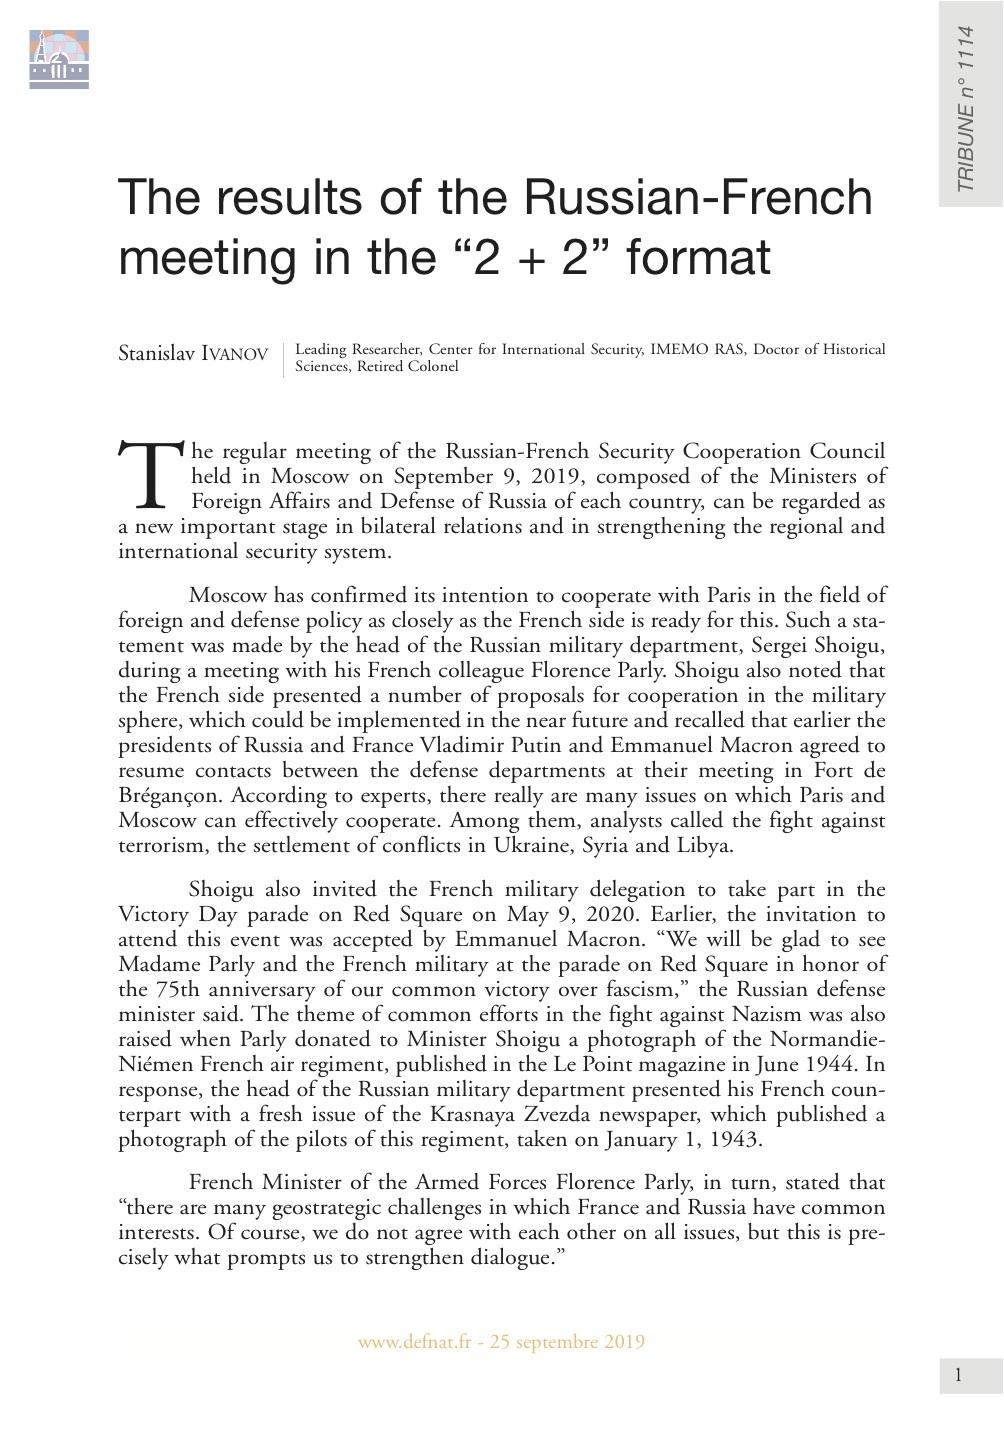 The results of the Russian-French meeting in the « 2 + 2 » format (T 1114)